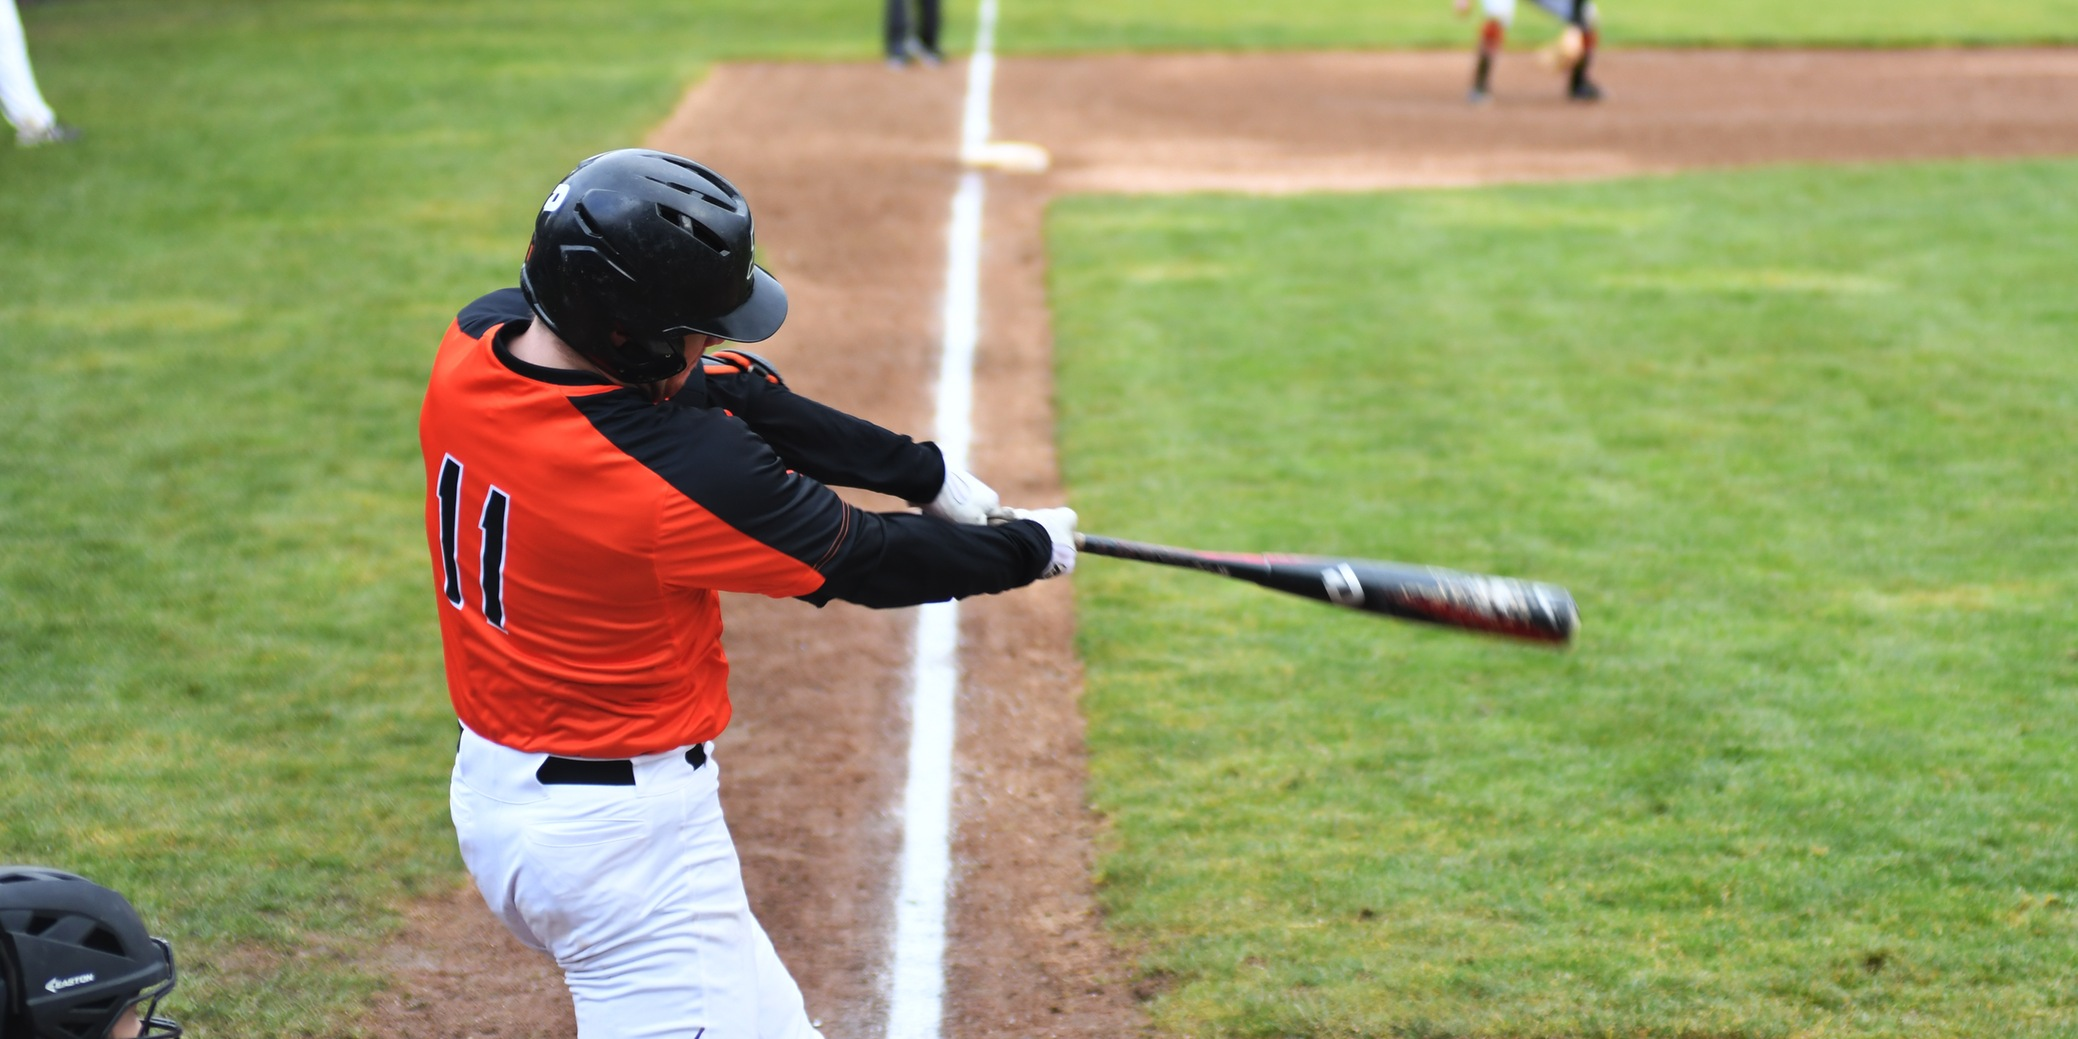 Pioneers fall short against Willamette despite season-high 13 hit performance